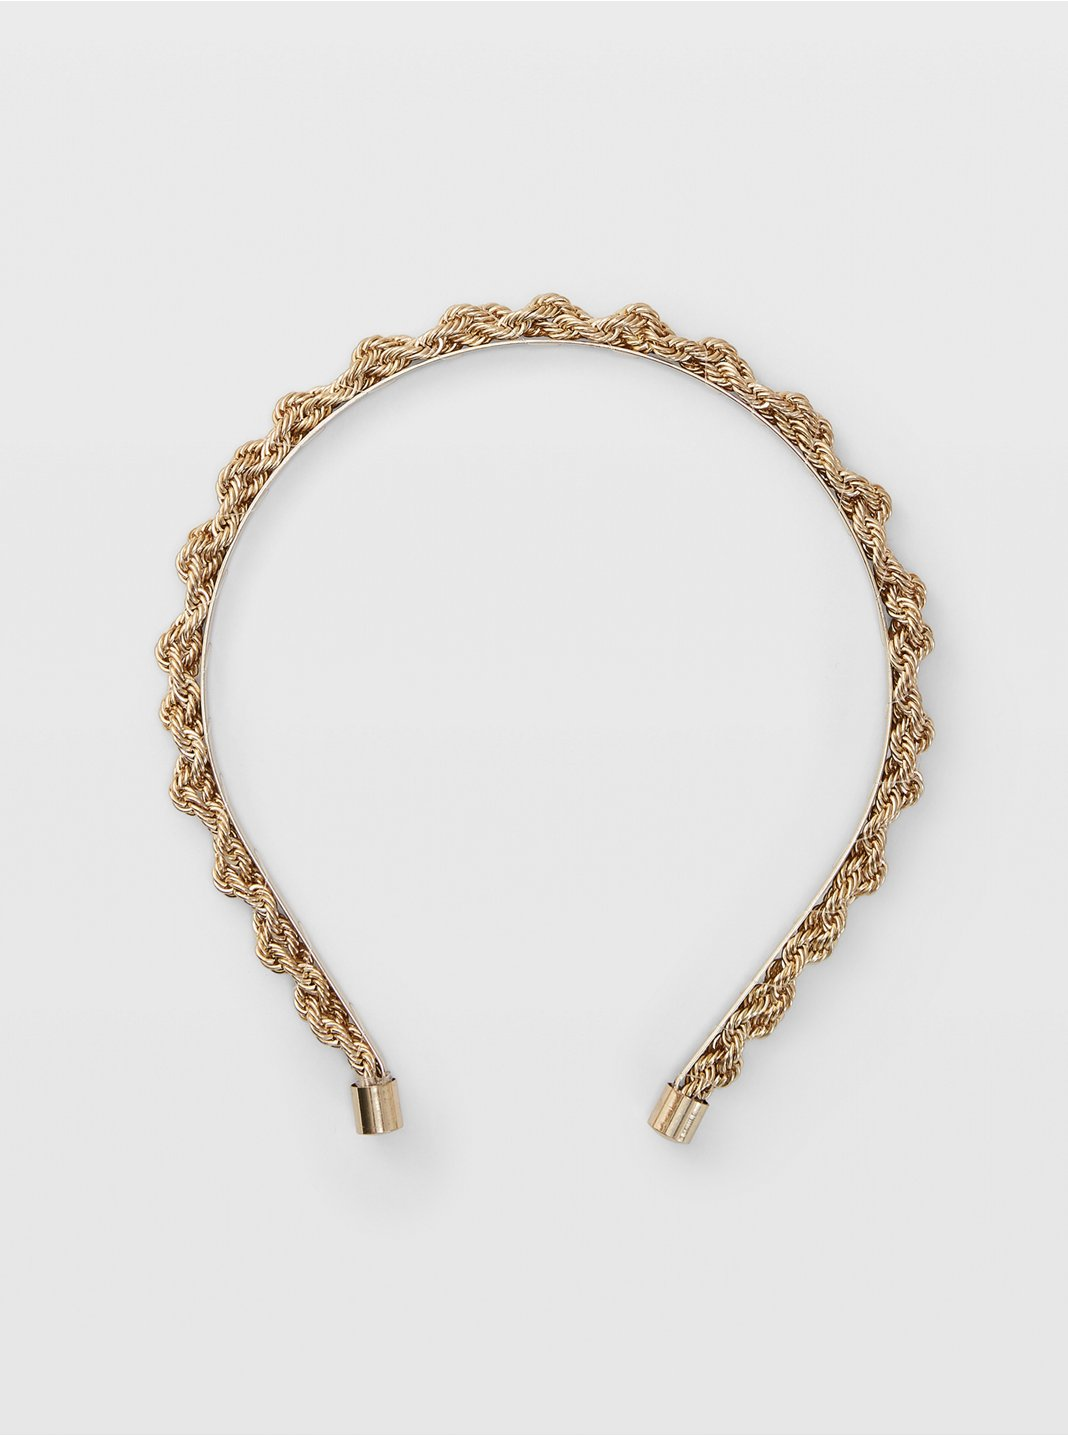 Twist Chain Headband